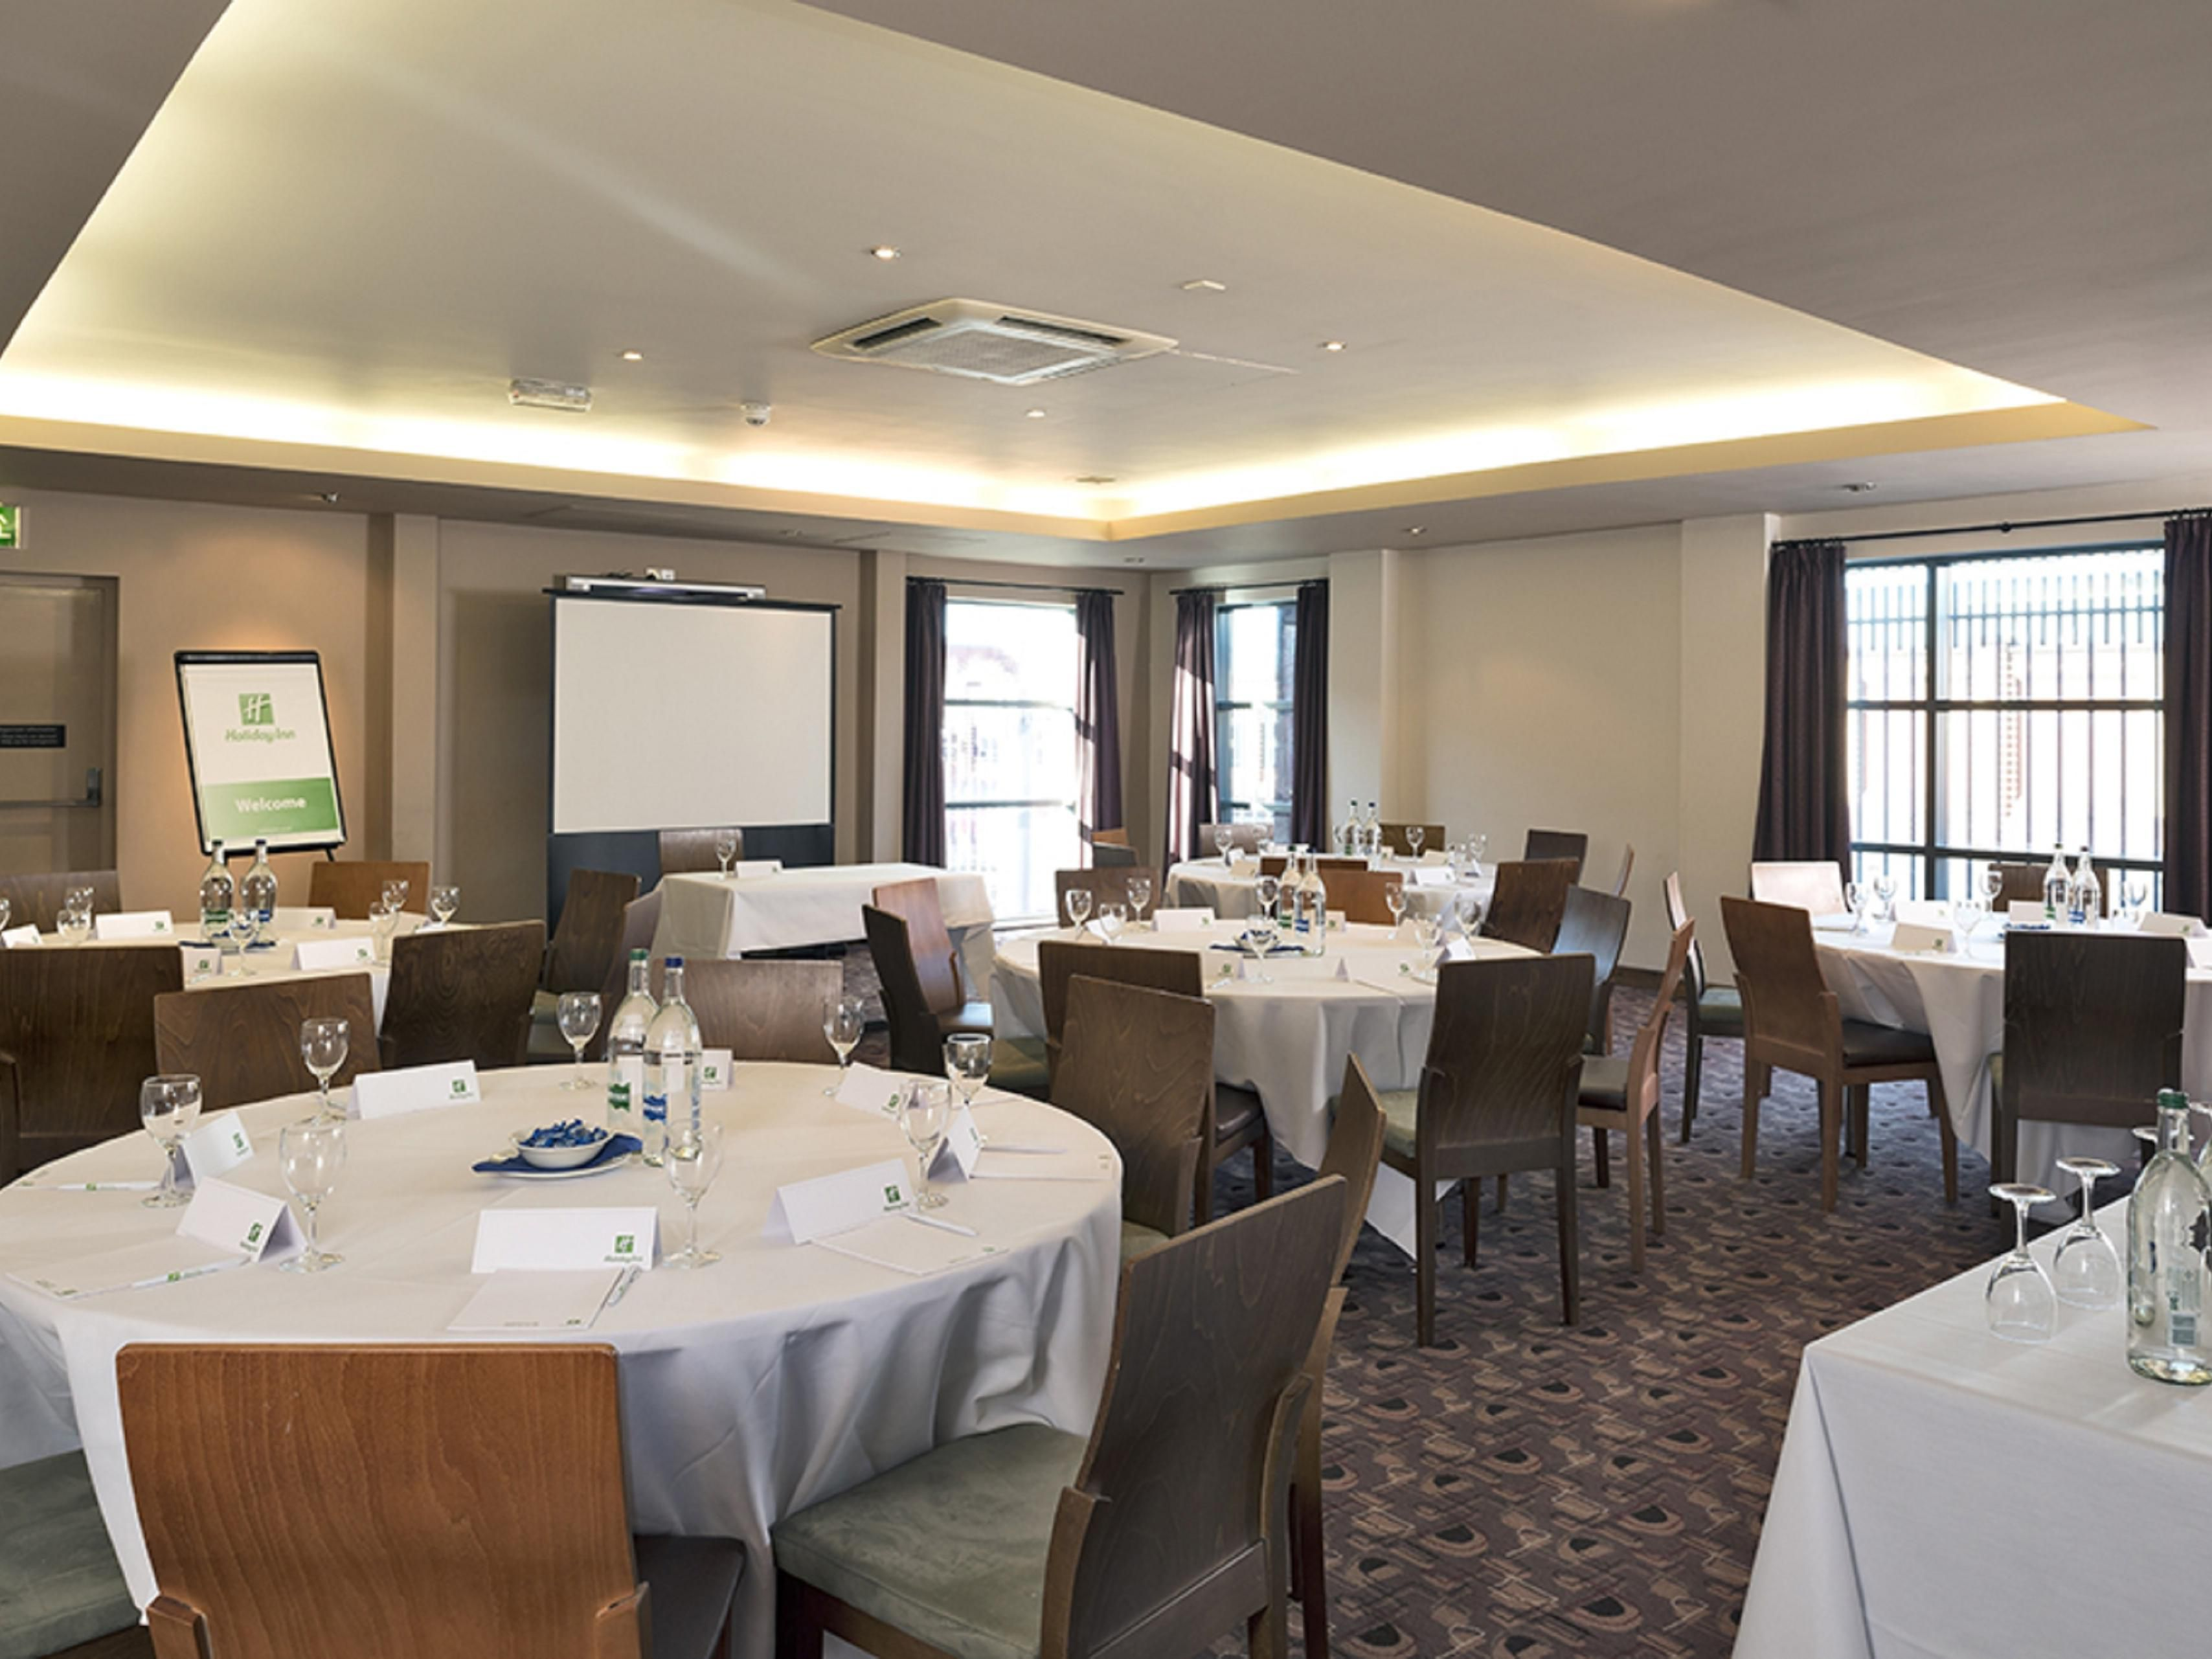 Ken Barnes Suite can accommodate up to 100 delegates